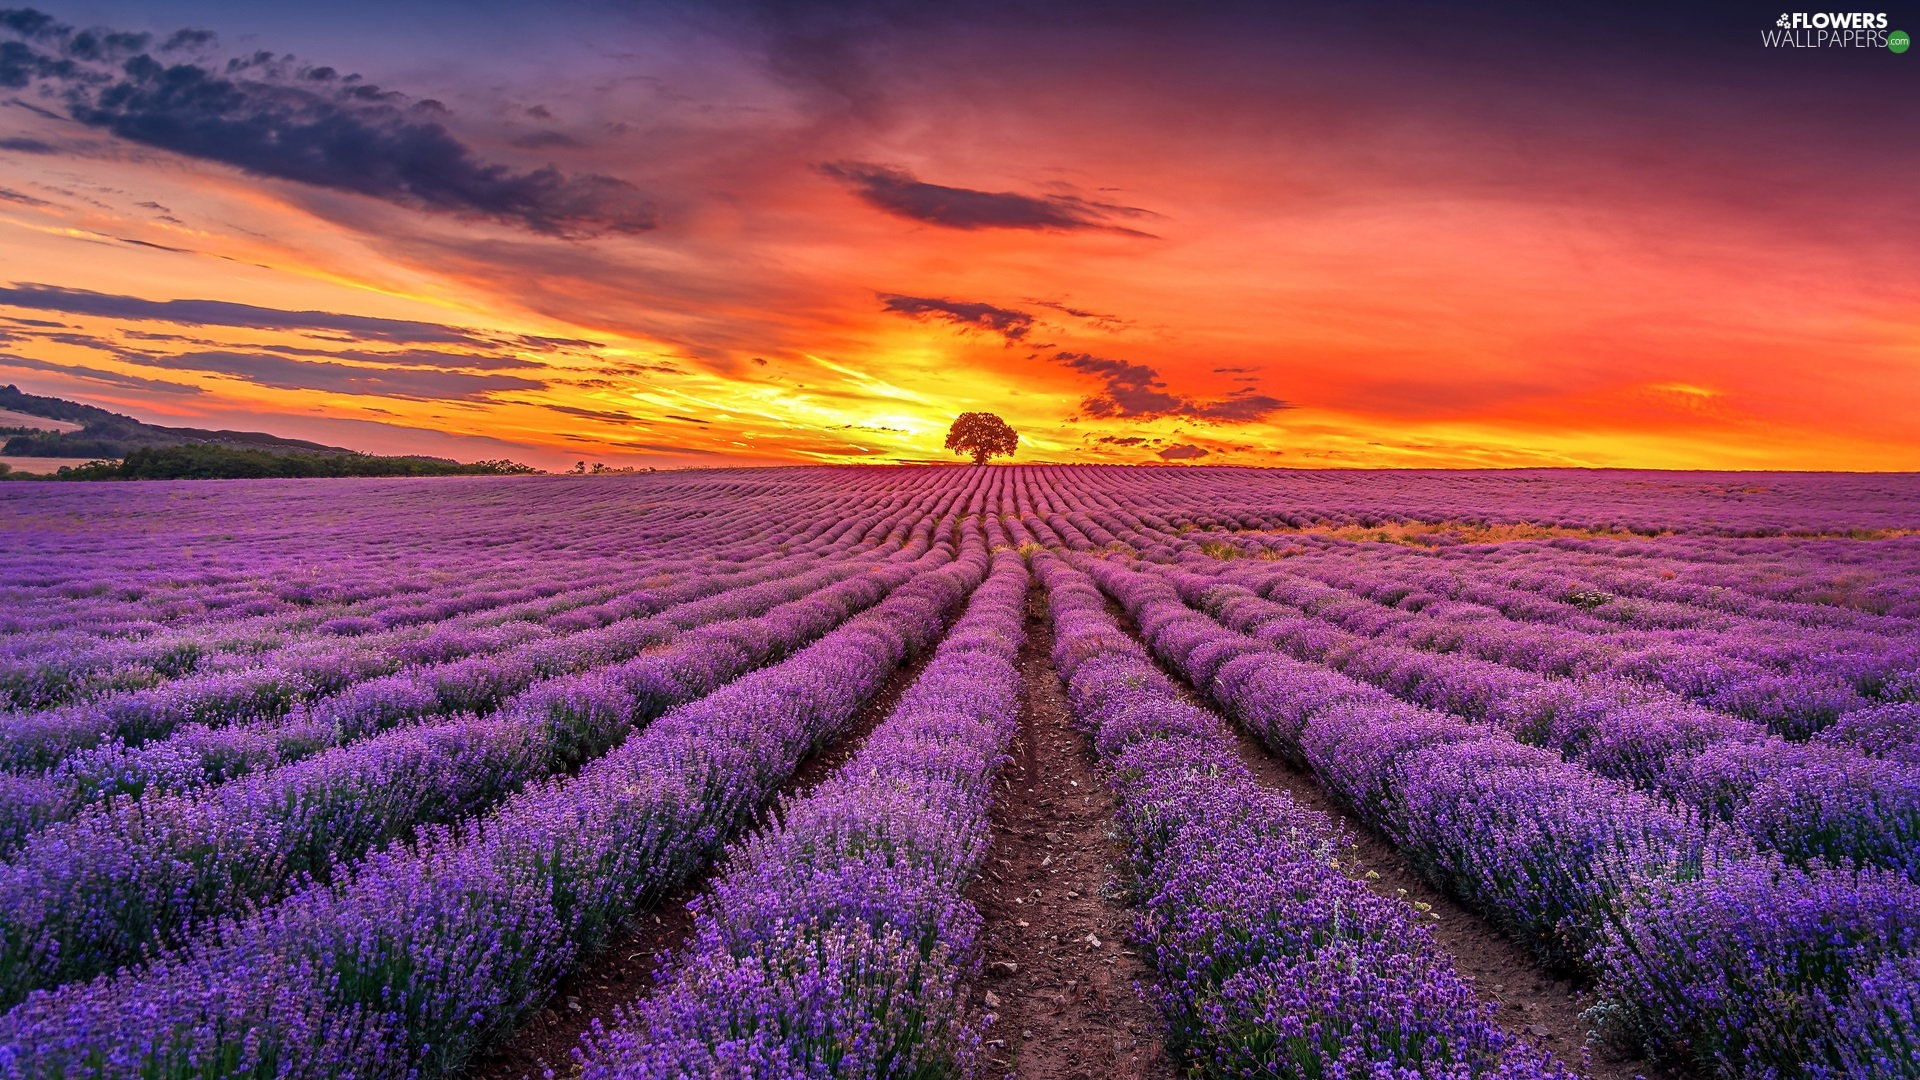 Great Sunsets, clouds, lavender, trees, Field